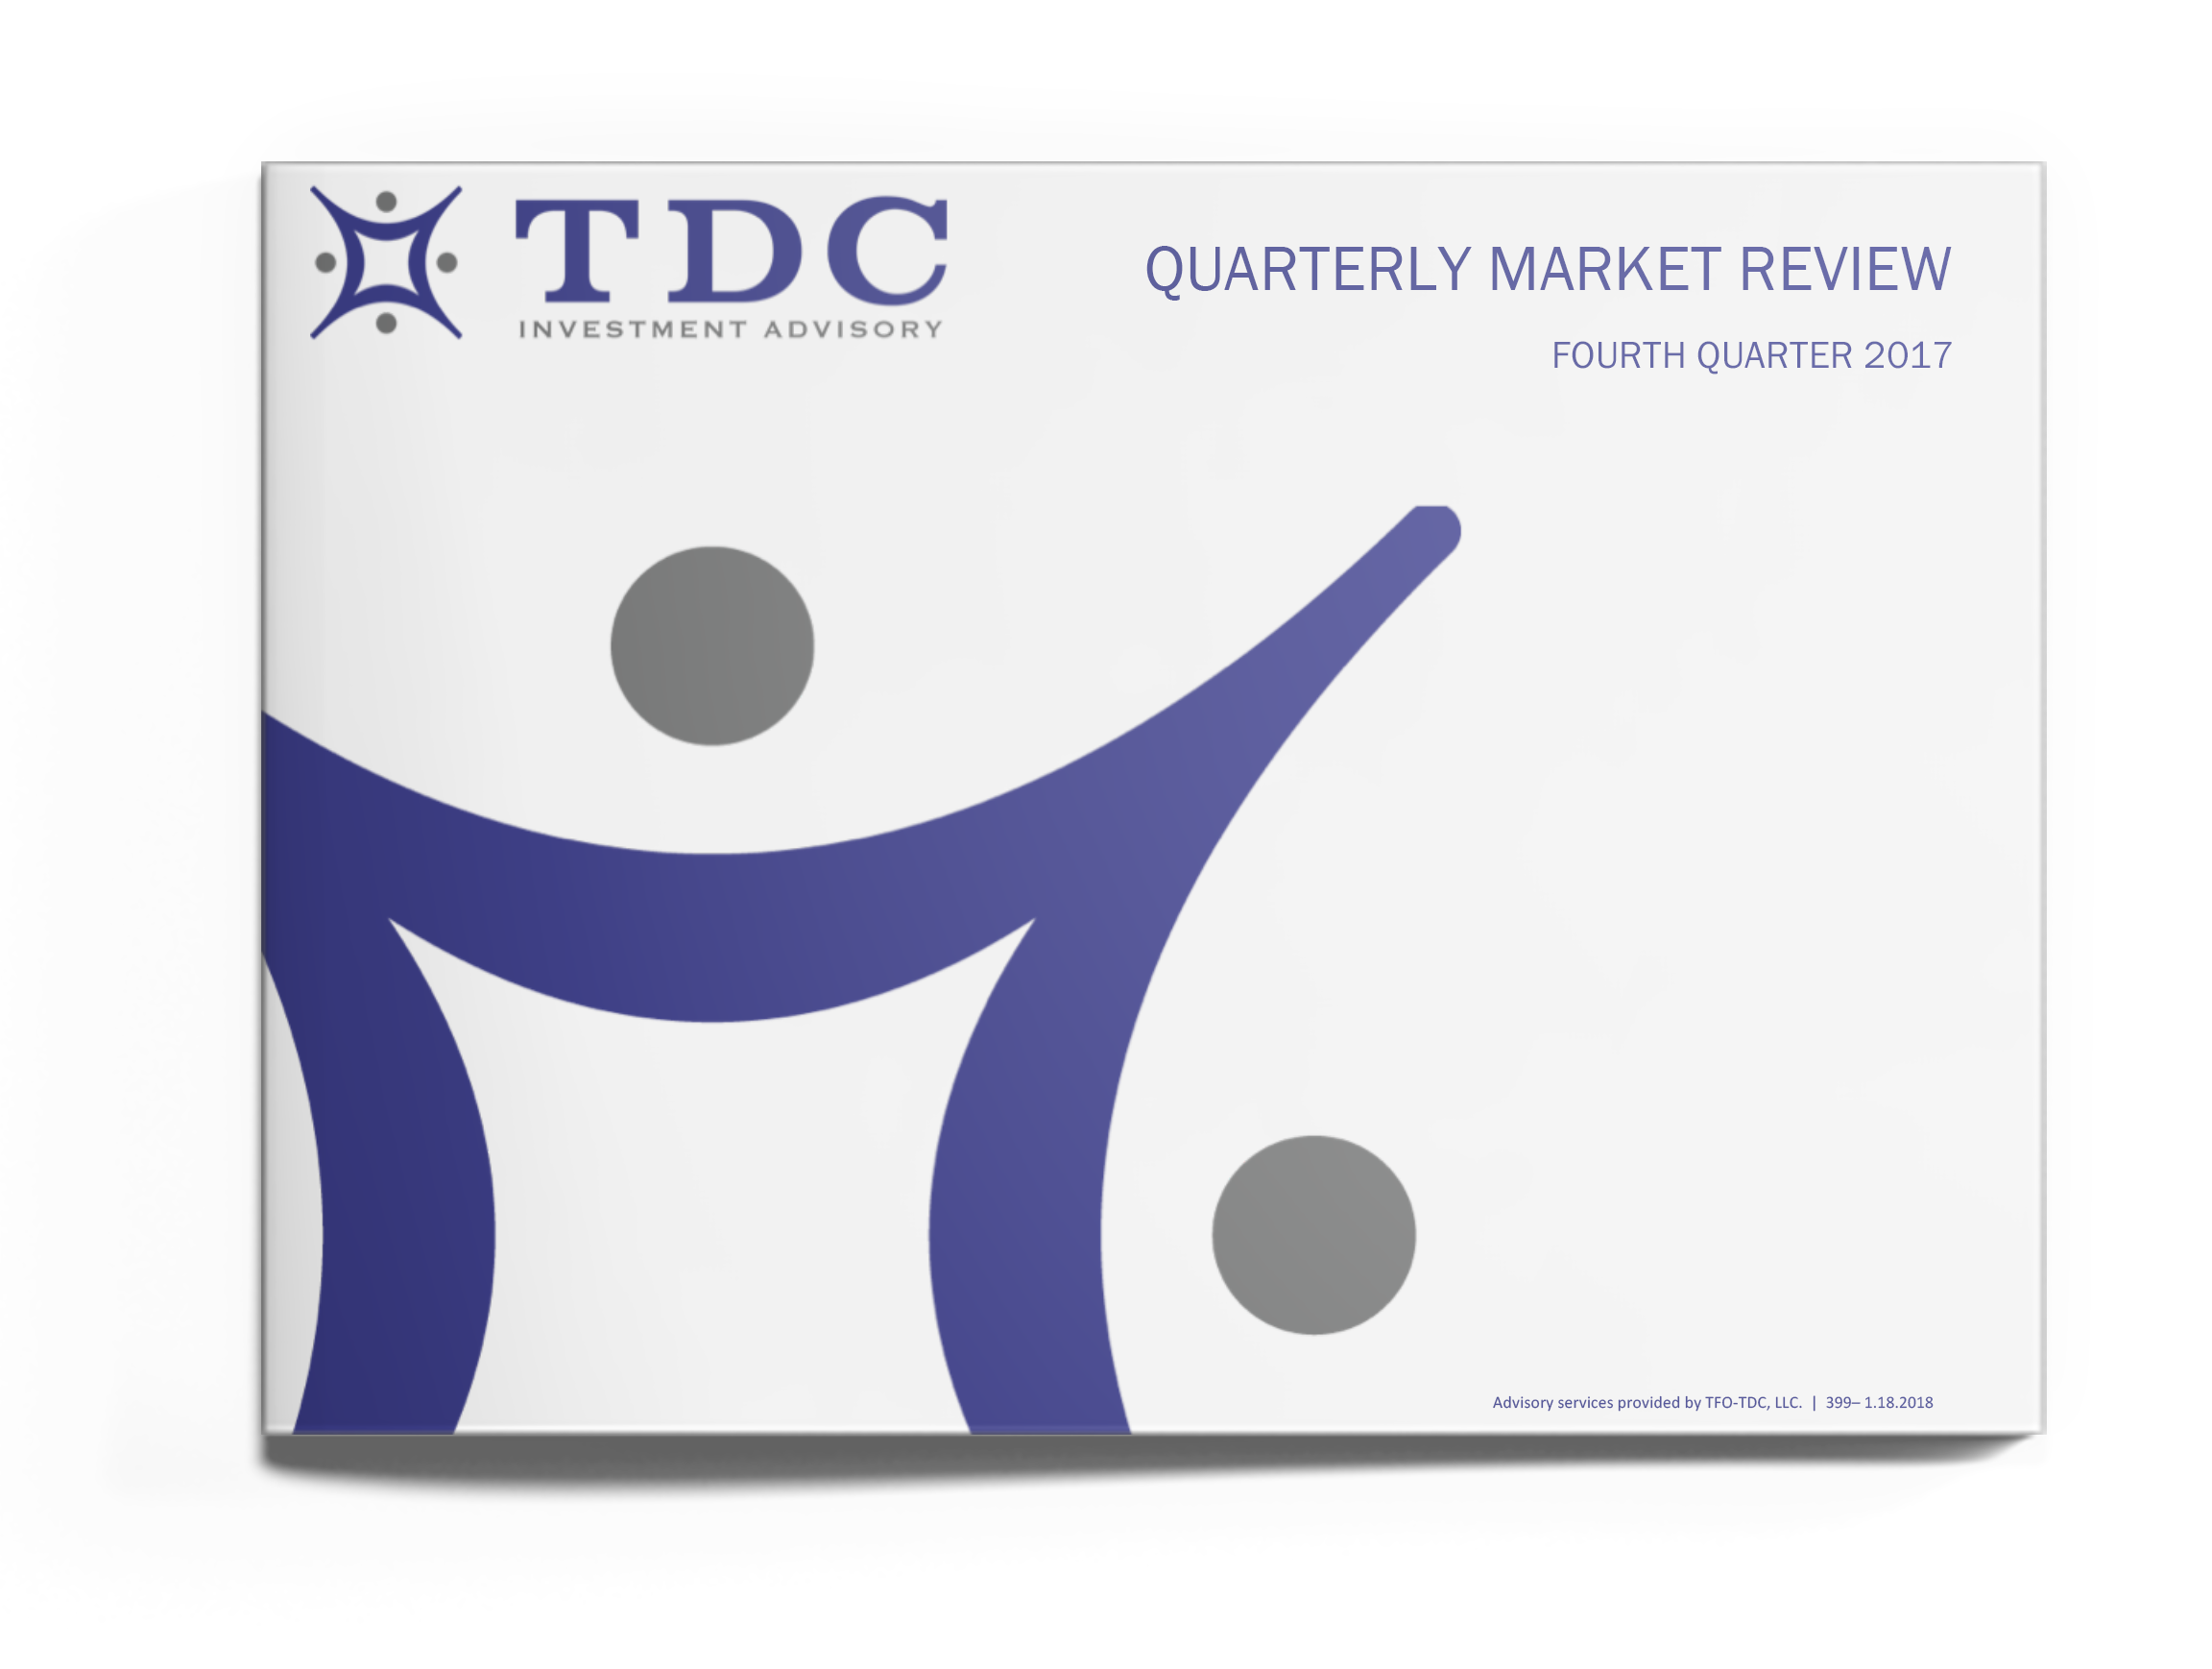 TDC's Quarterly Market Review for Q4 2017 is Now Available